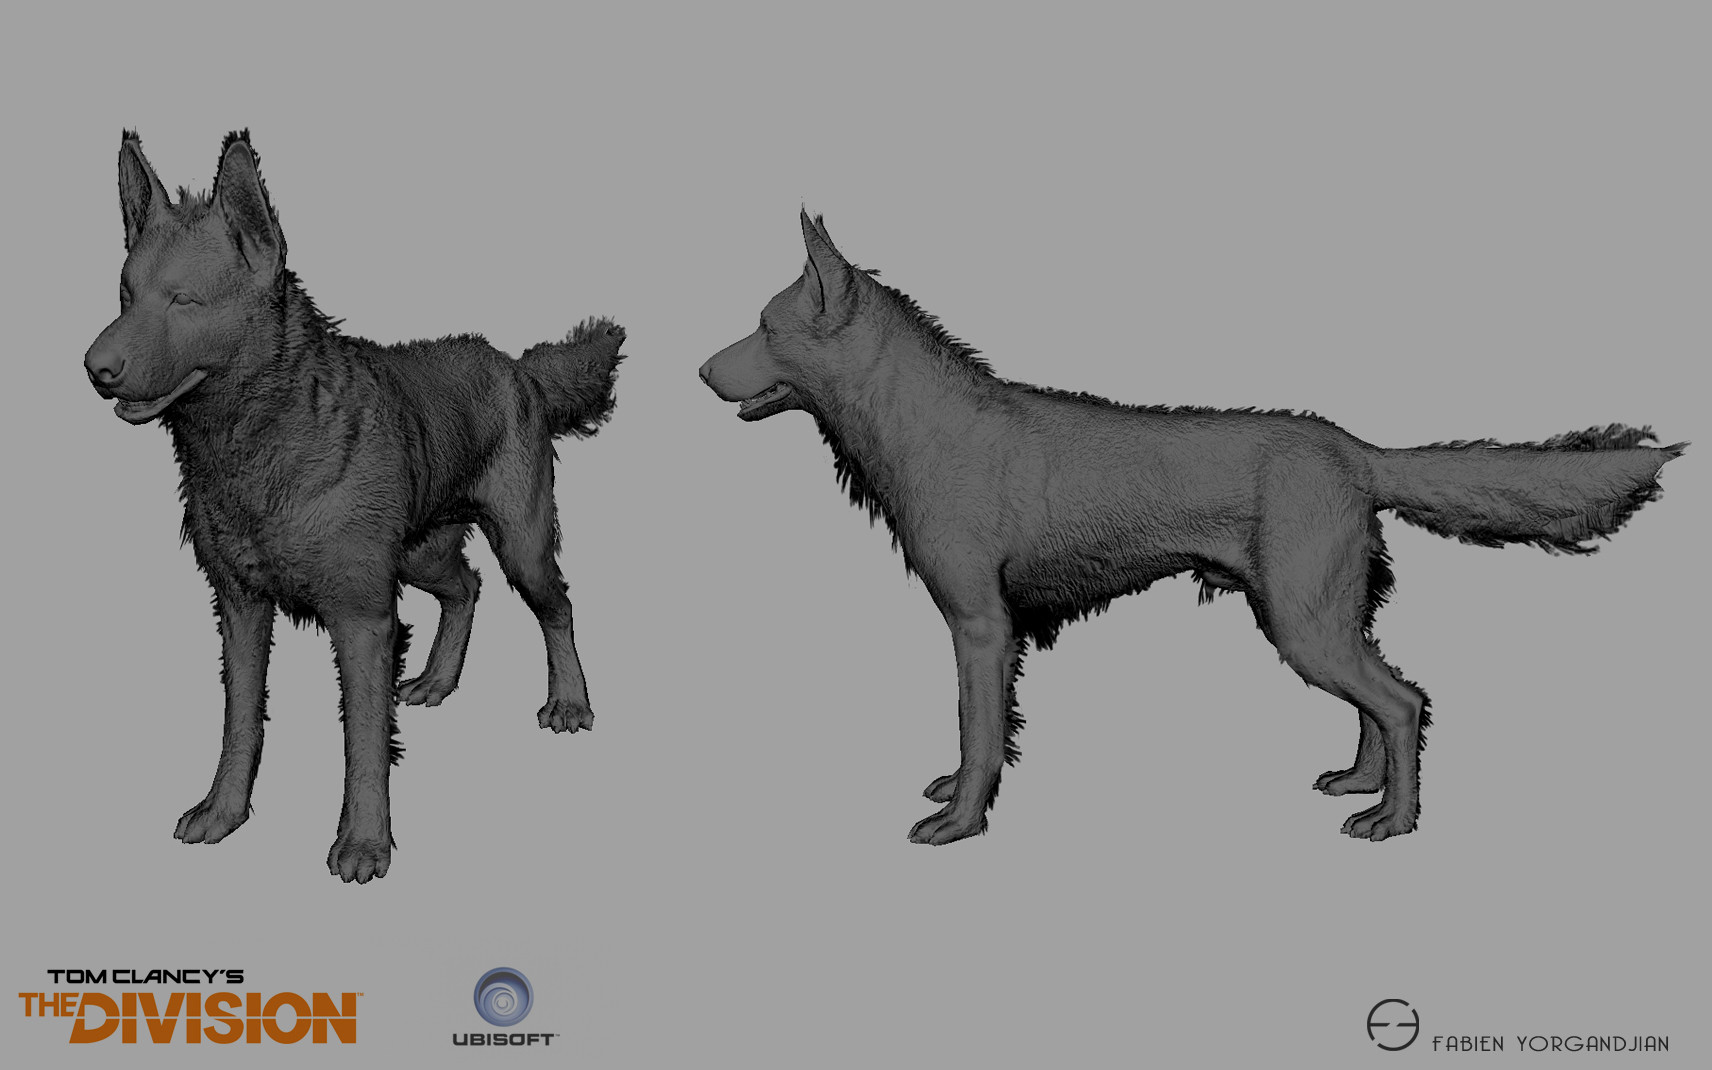 Fabien yorgandjian the division dog02 ingame